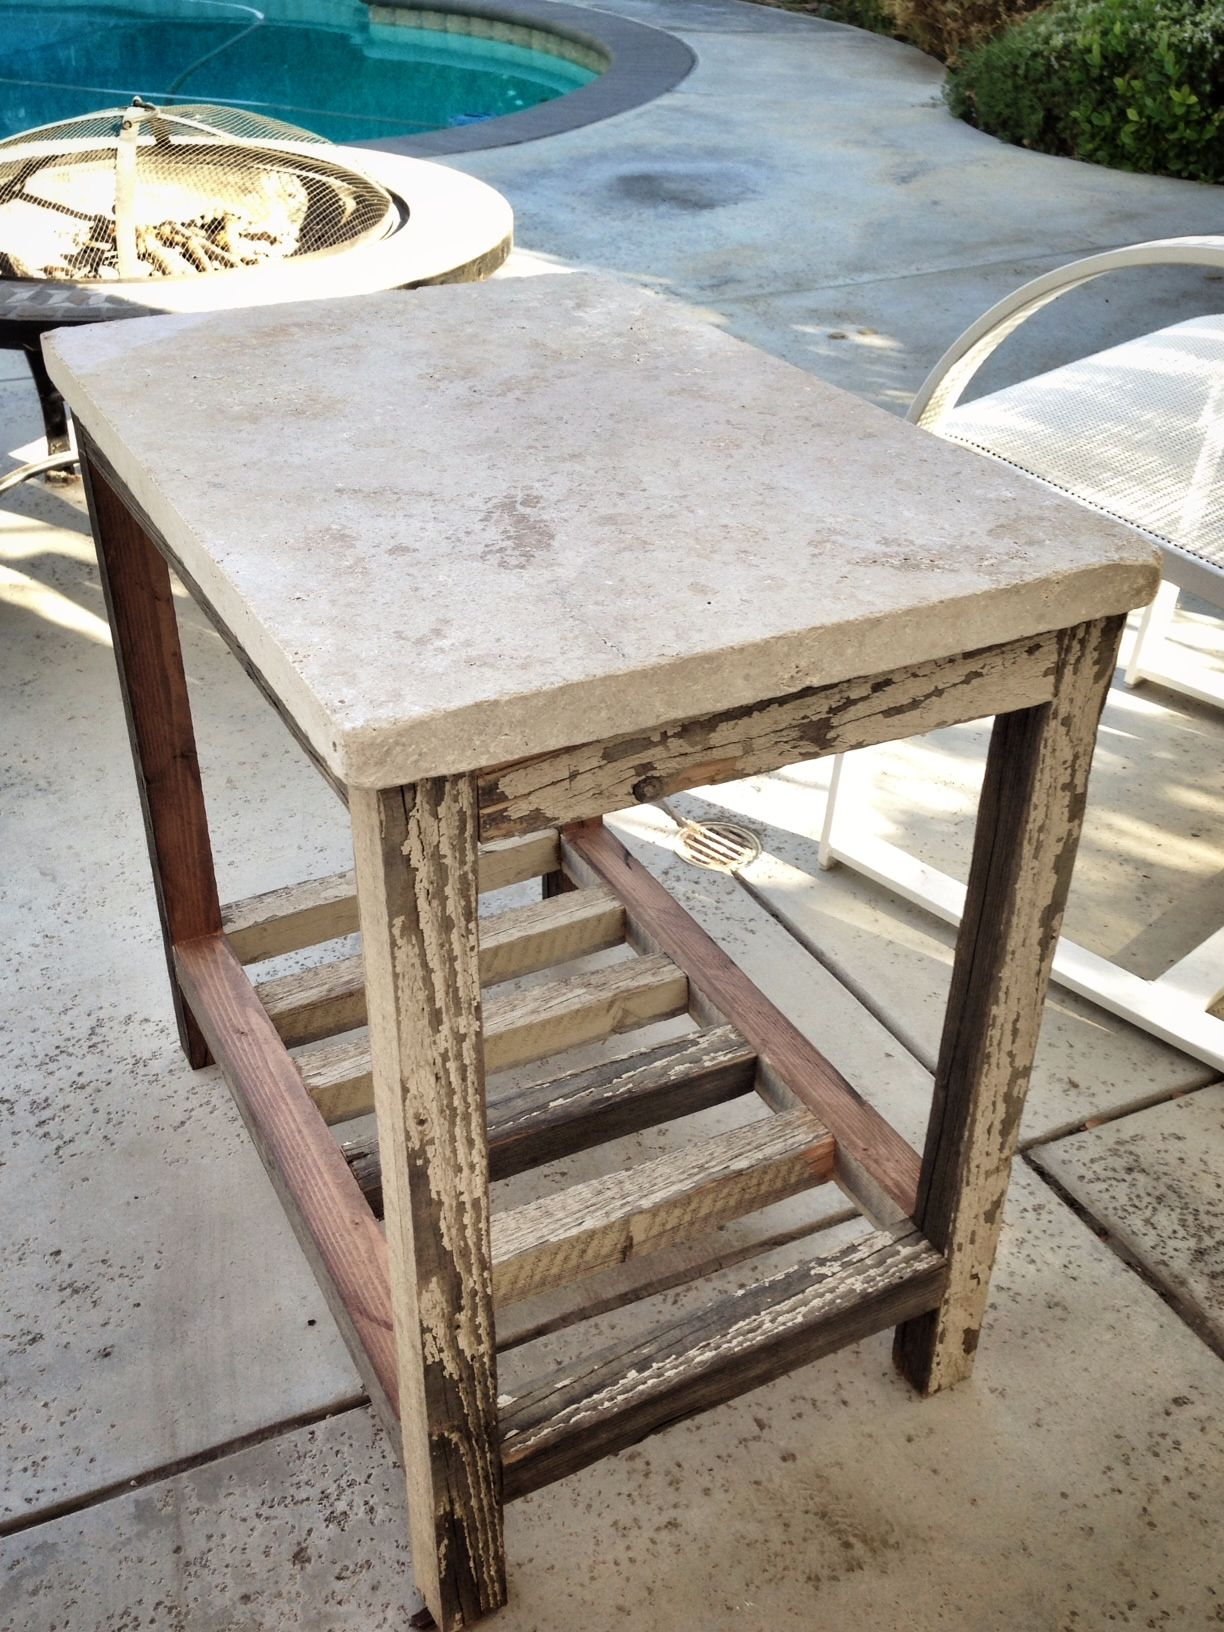 Ana White Build A Travertine Paver Side Table Free And Easy Diy Project Furniture Plans